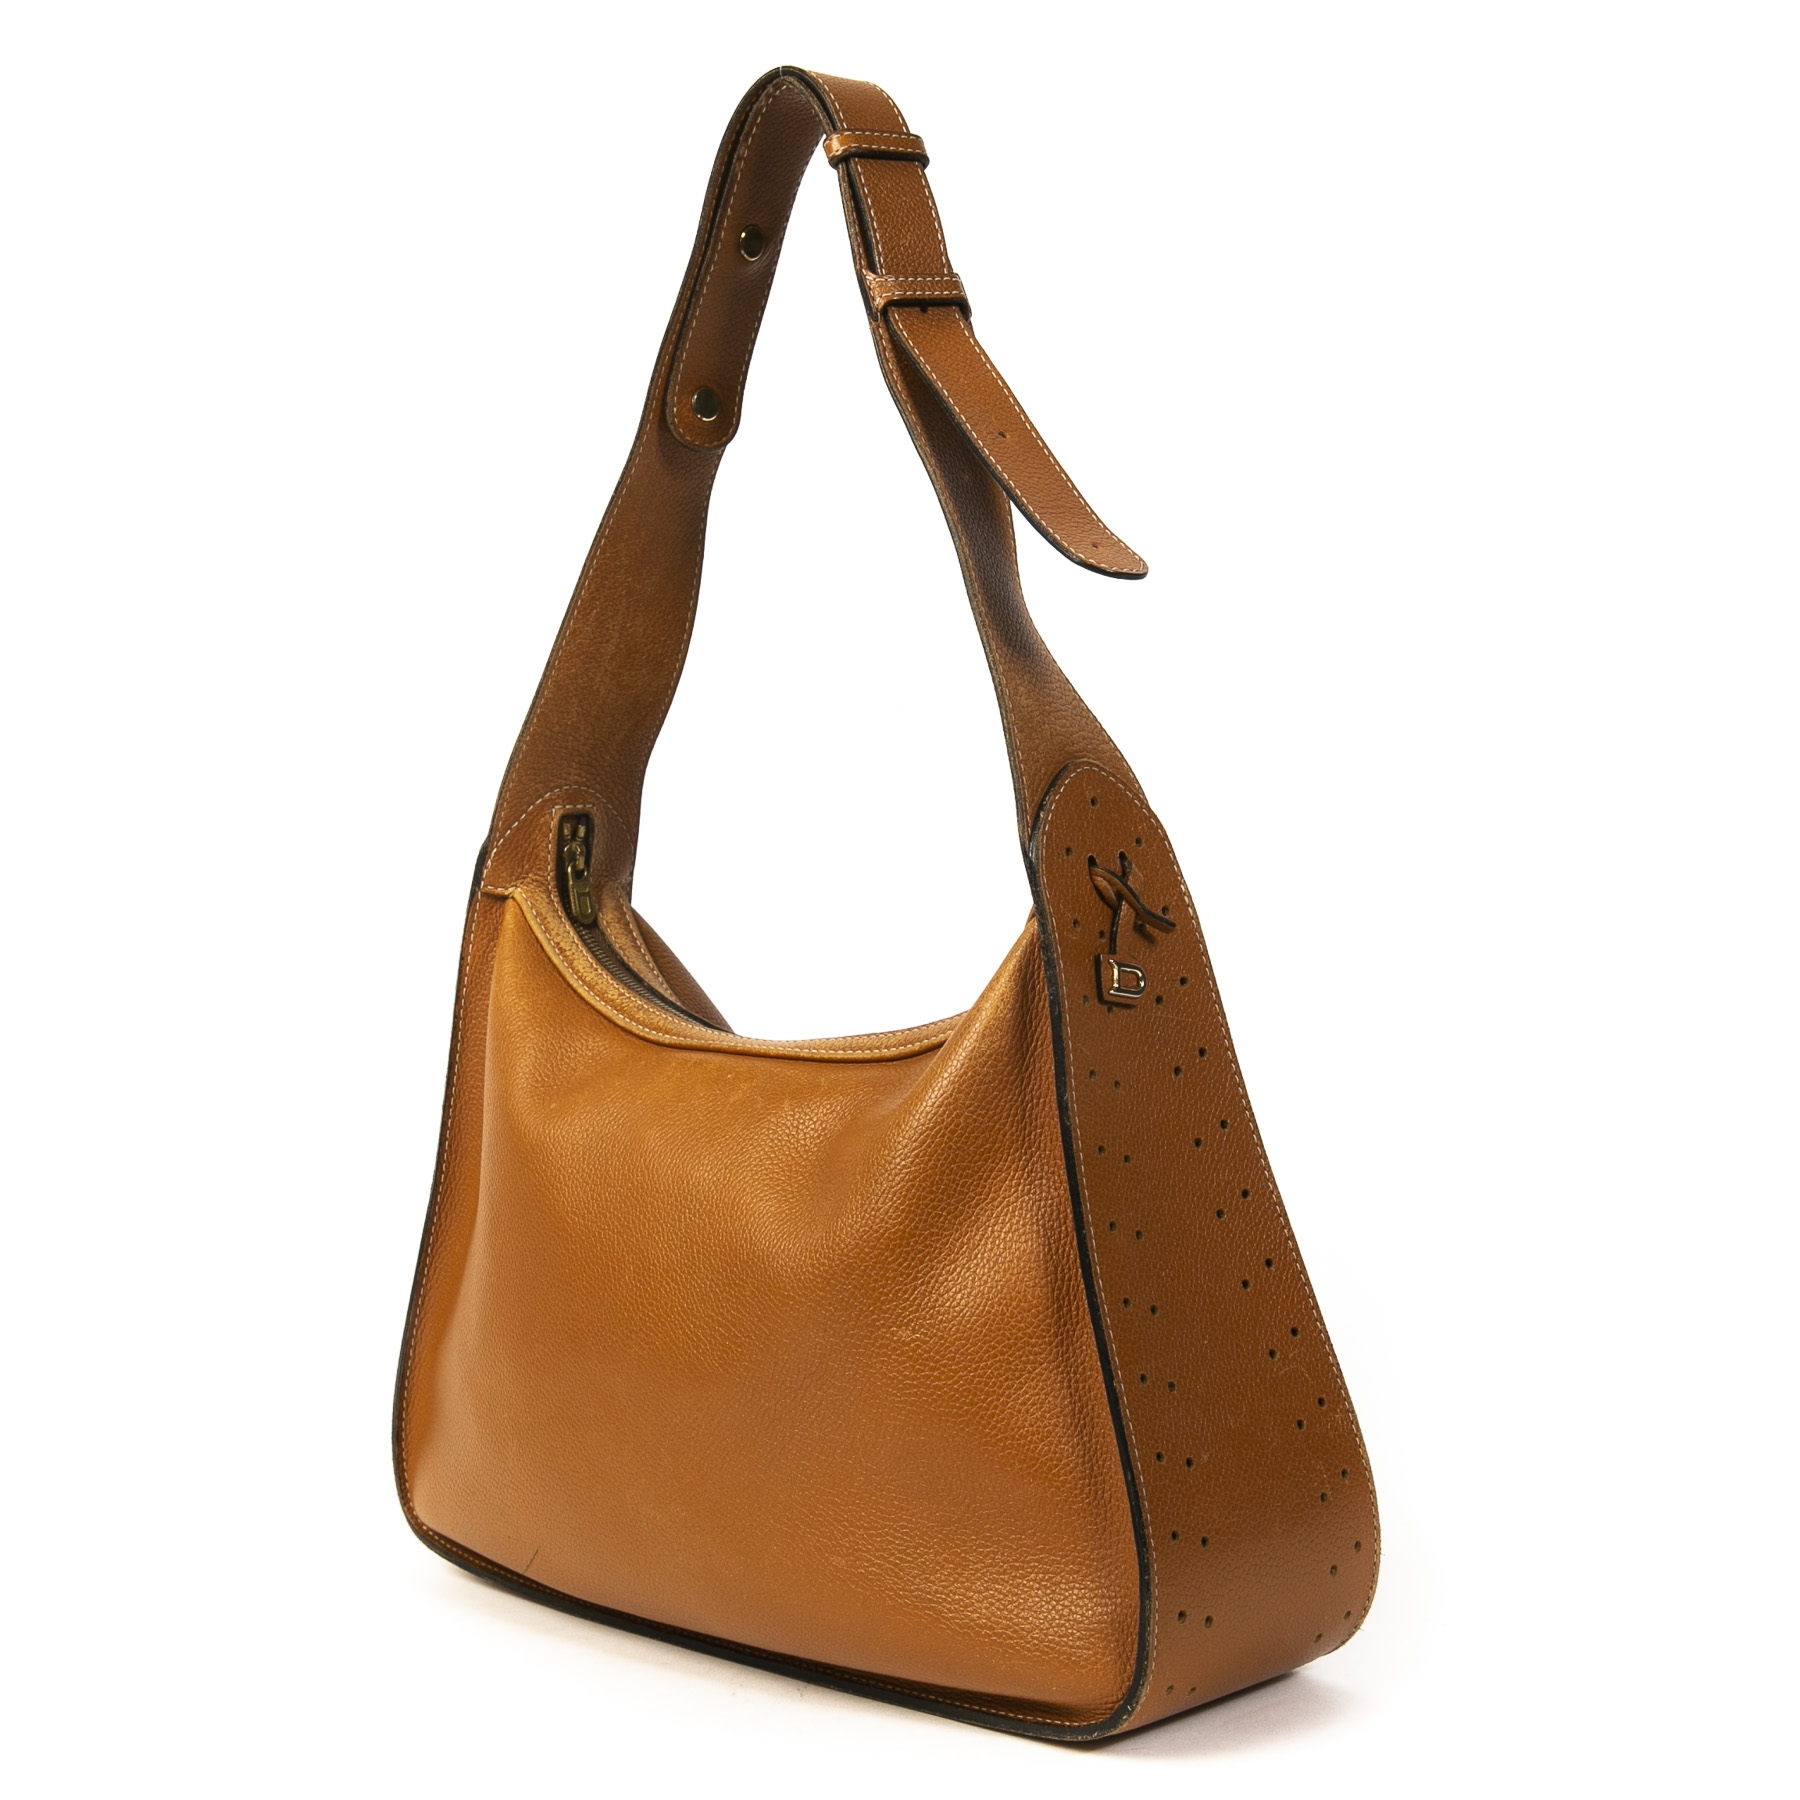 Authentic second-hand vintage Delvaux Camel Pensée Shoulder Bag buy online webshop LabelLOV